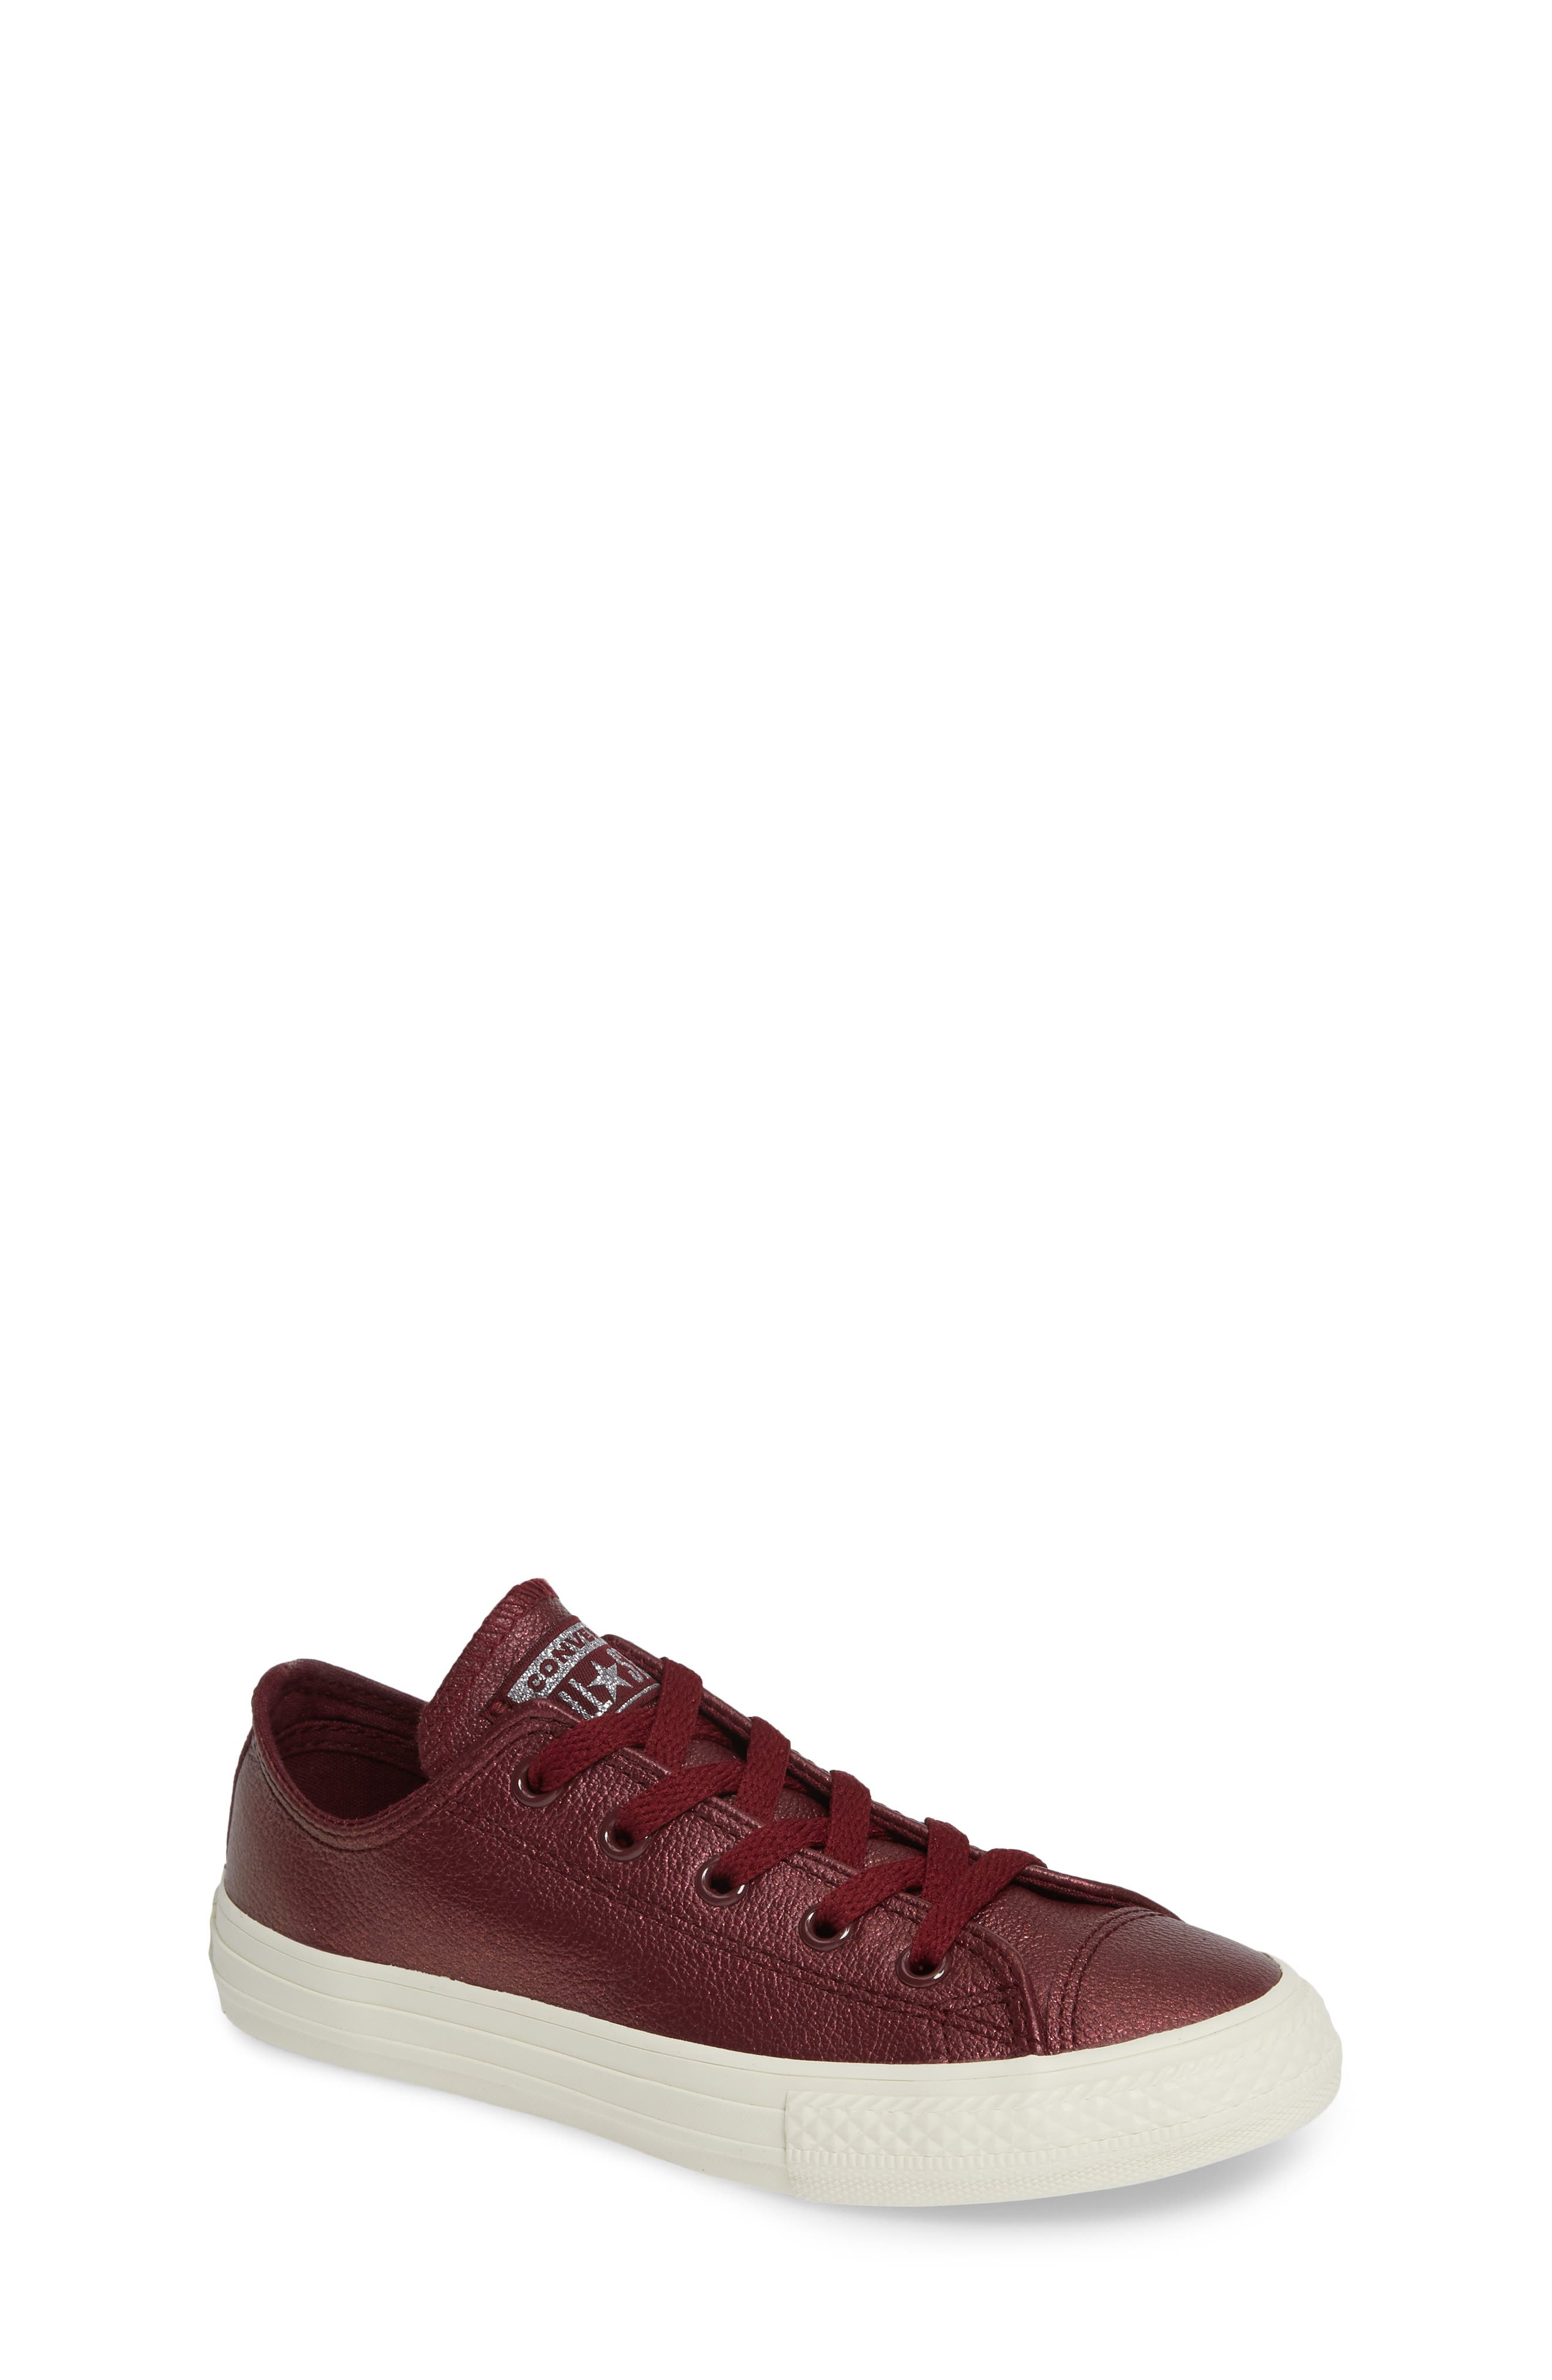 Chuck Taylor<sup>®</sup> All Star<sup>®</sup> Metallic Faux Leather Ox Sneaker,                         Main,                         color, Dark Burgundy